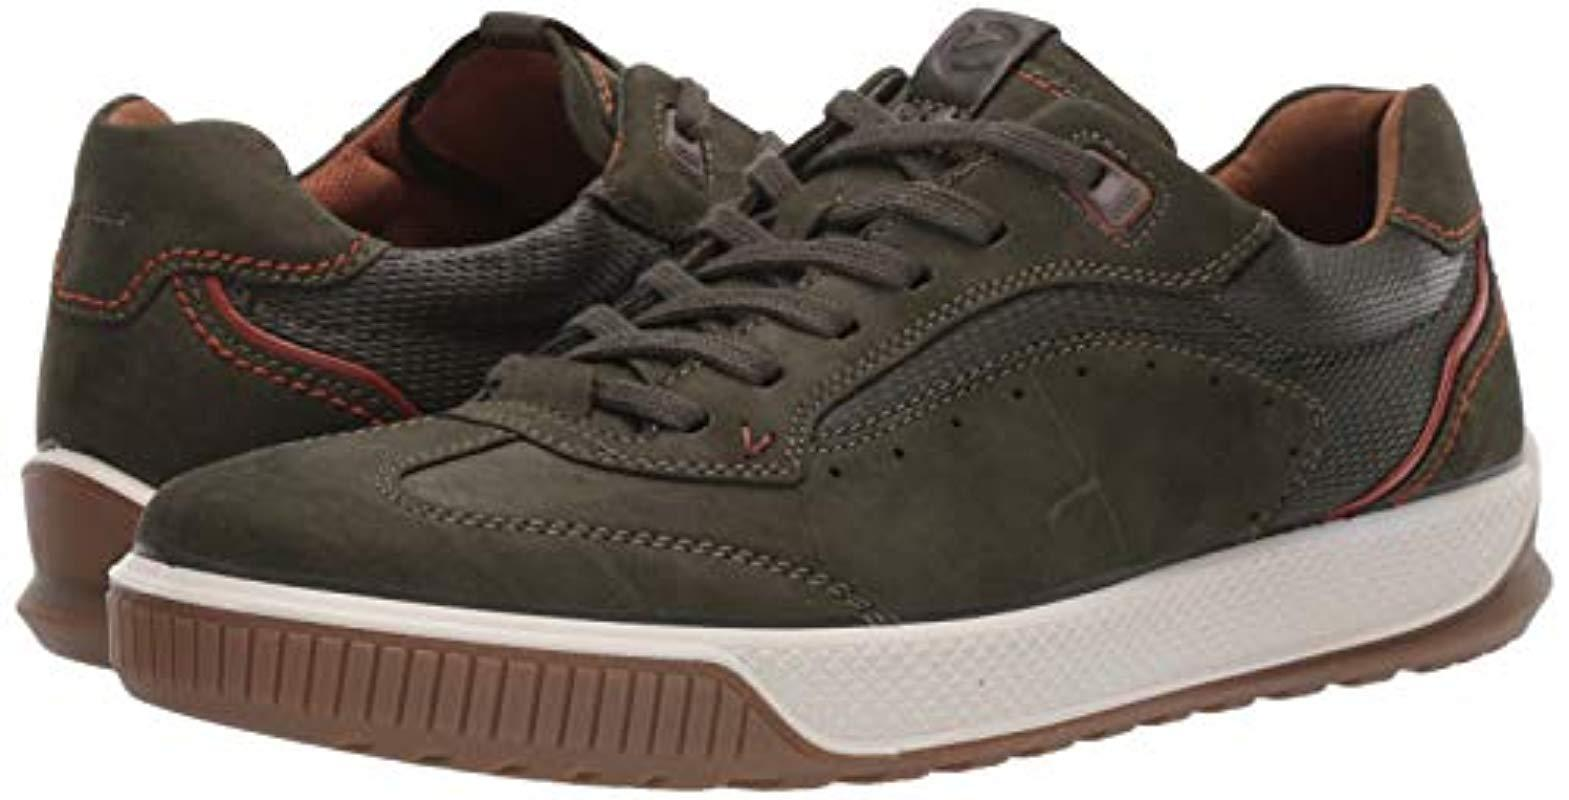 Ecco Leather Byway Tred Urban Sneaker